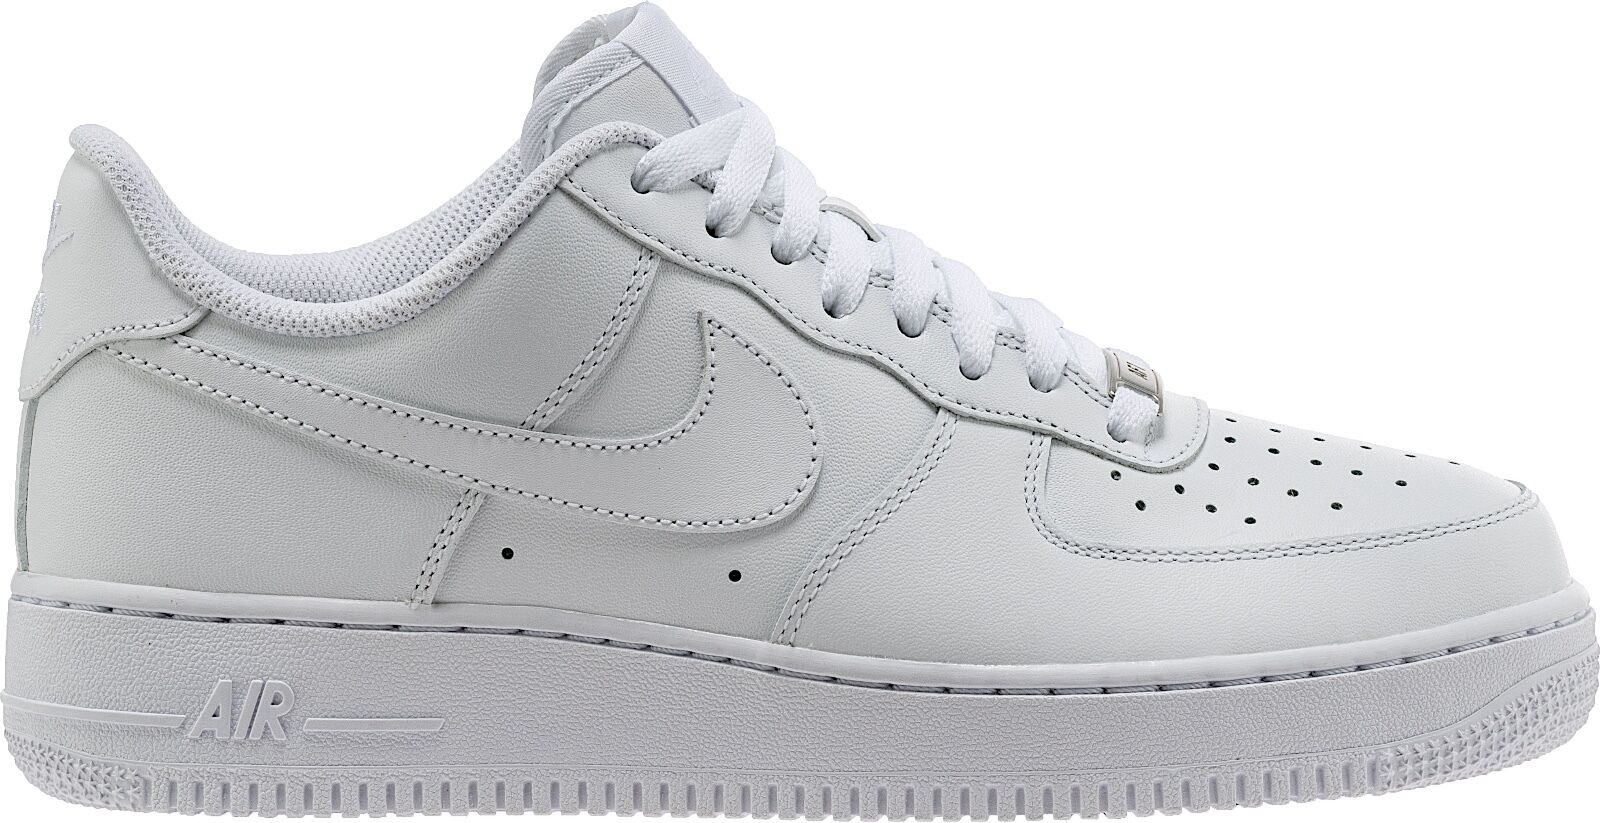 NIKE AIR FORCE 1 LOW MENS CLASSIC OG WHITE ALL LEATHER 315122 111 100% AUTHENTIC